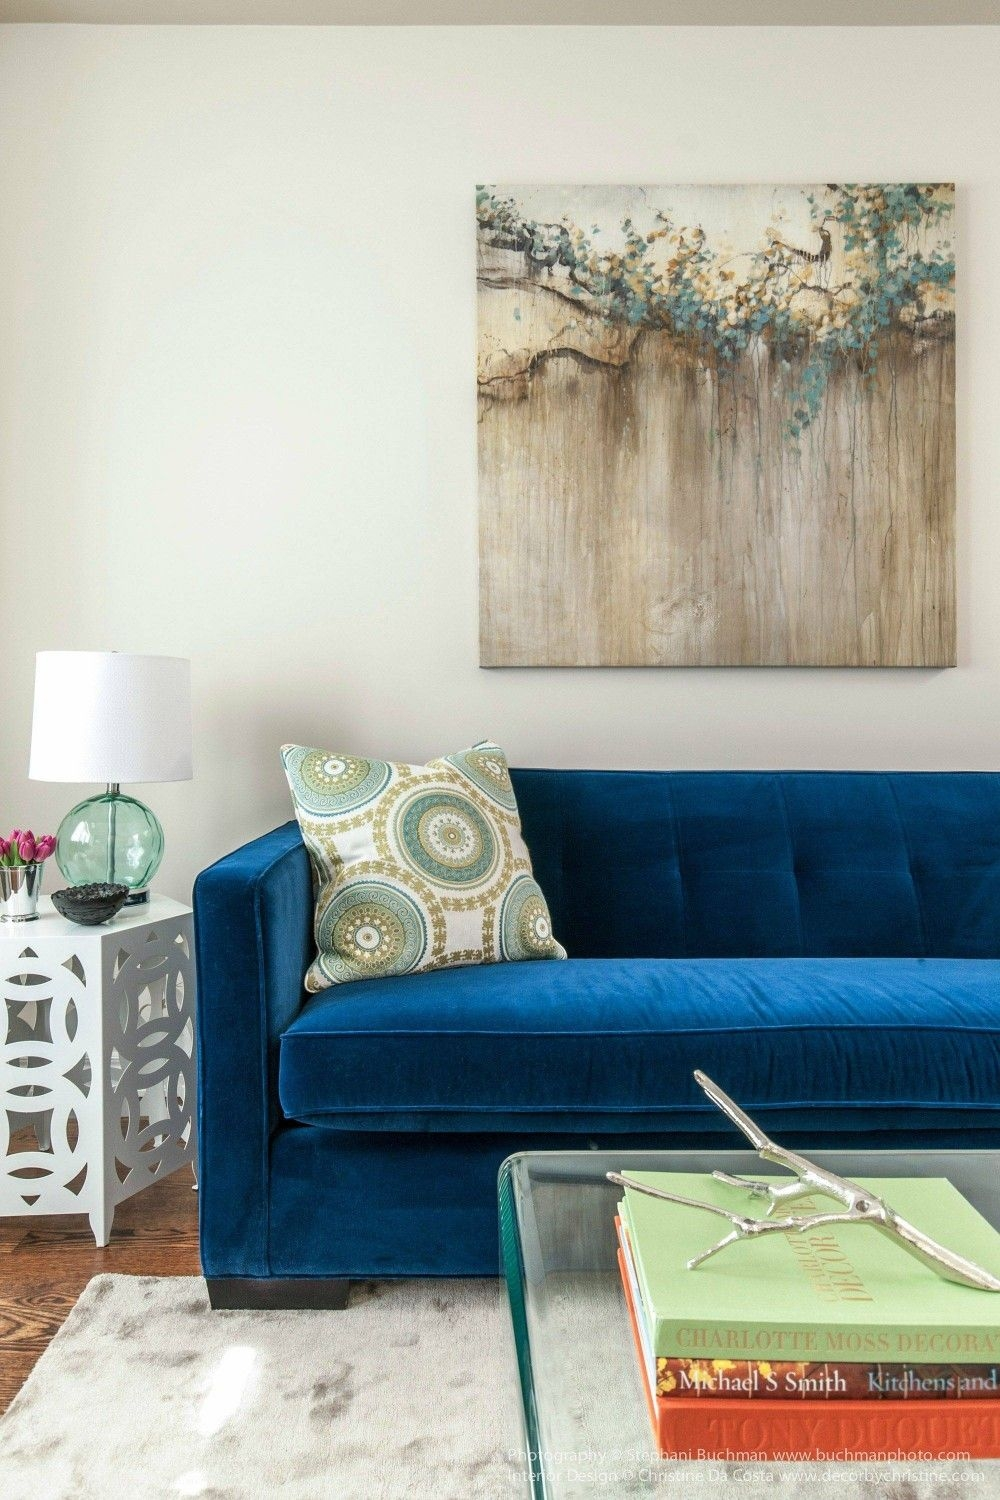 Furniture Trendy Blue Velvet Couch Design To Inspired Your Furniture Decorating Ideas